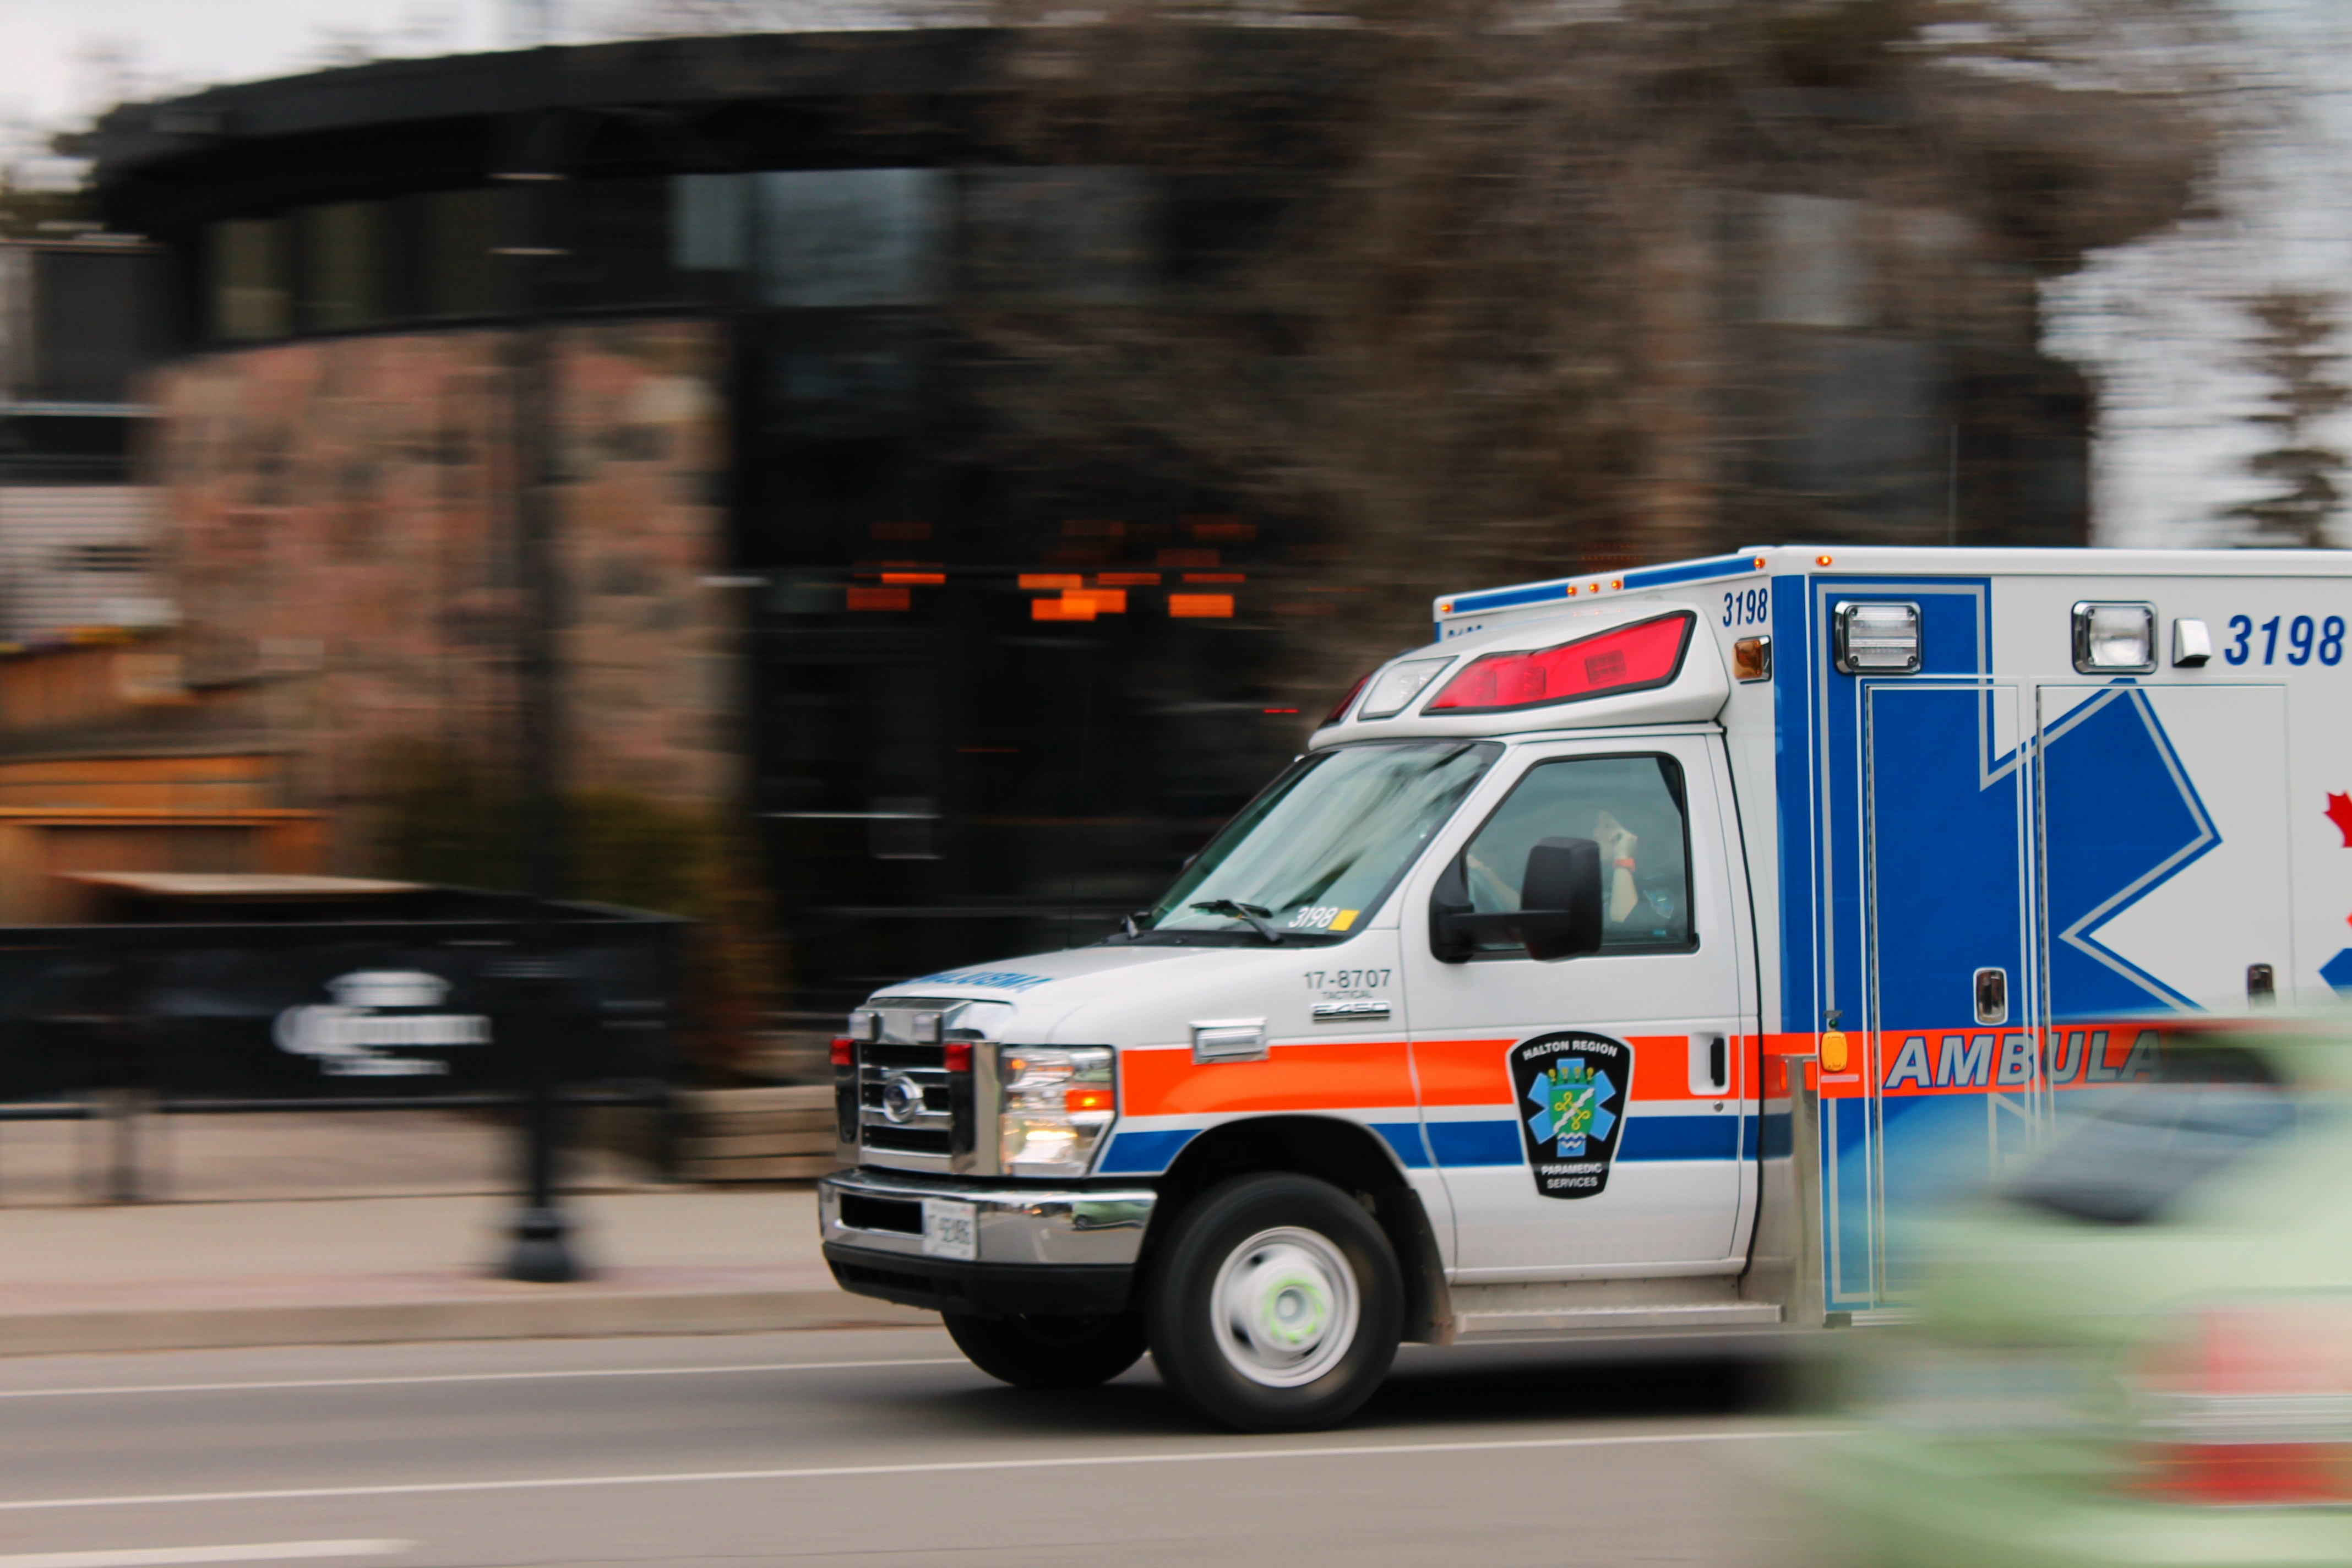 white and blue ambulance van traveling on road